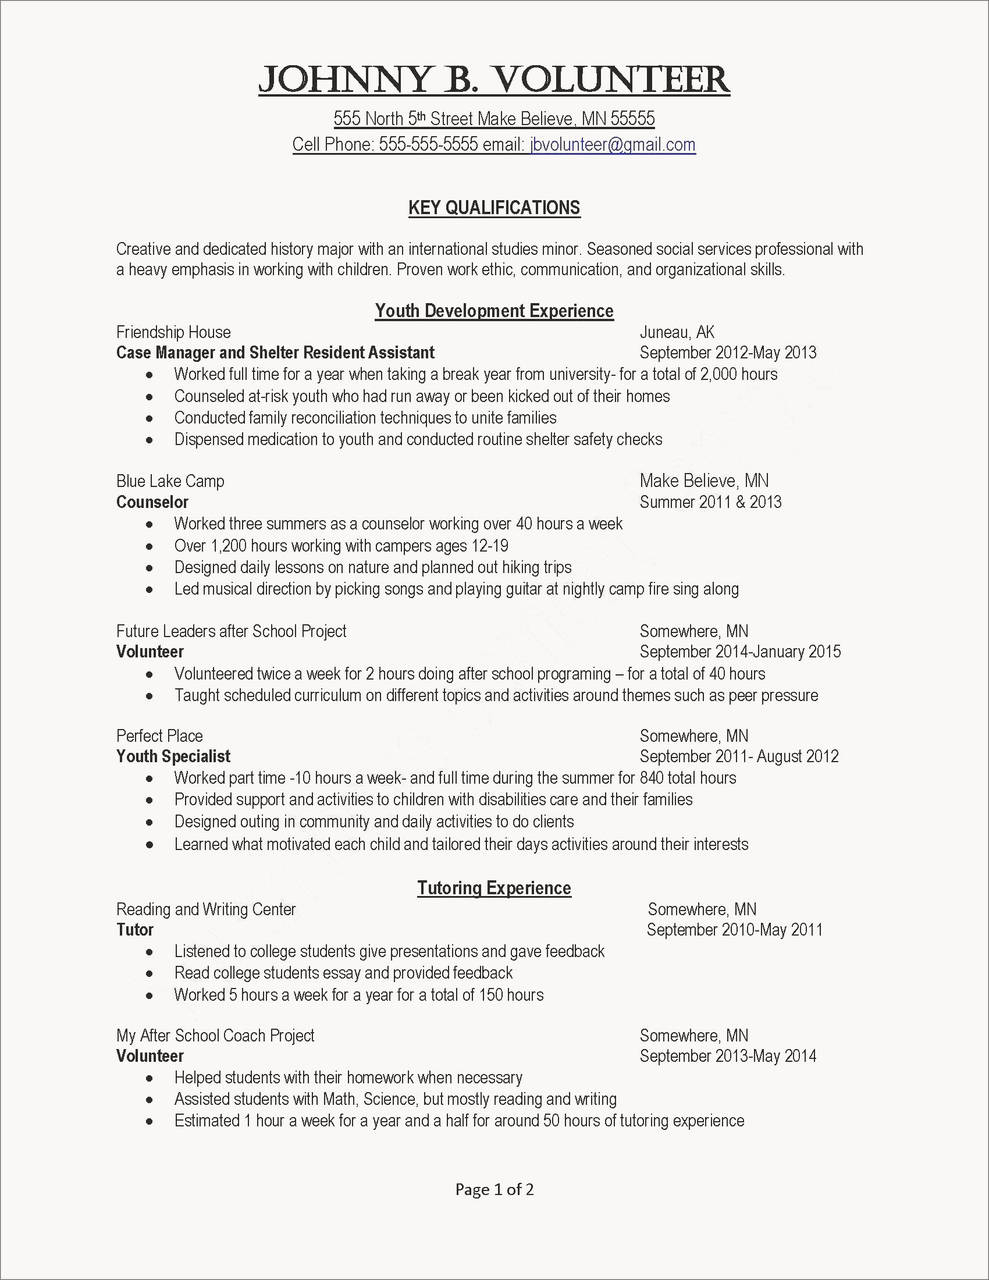 Key Skills for Resume - Perfect Resume Example Luxury Resumes Skills Examples Resume